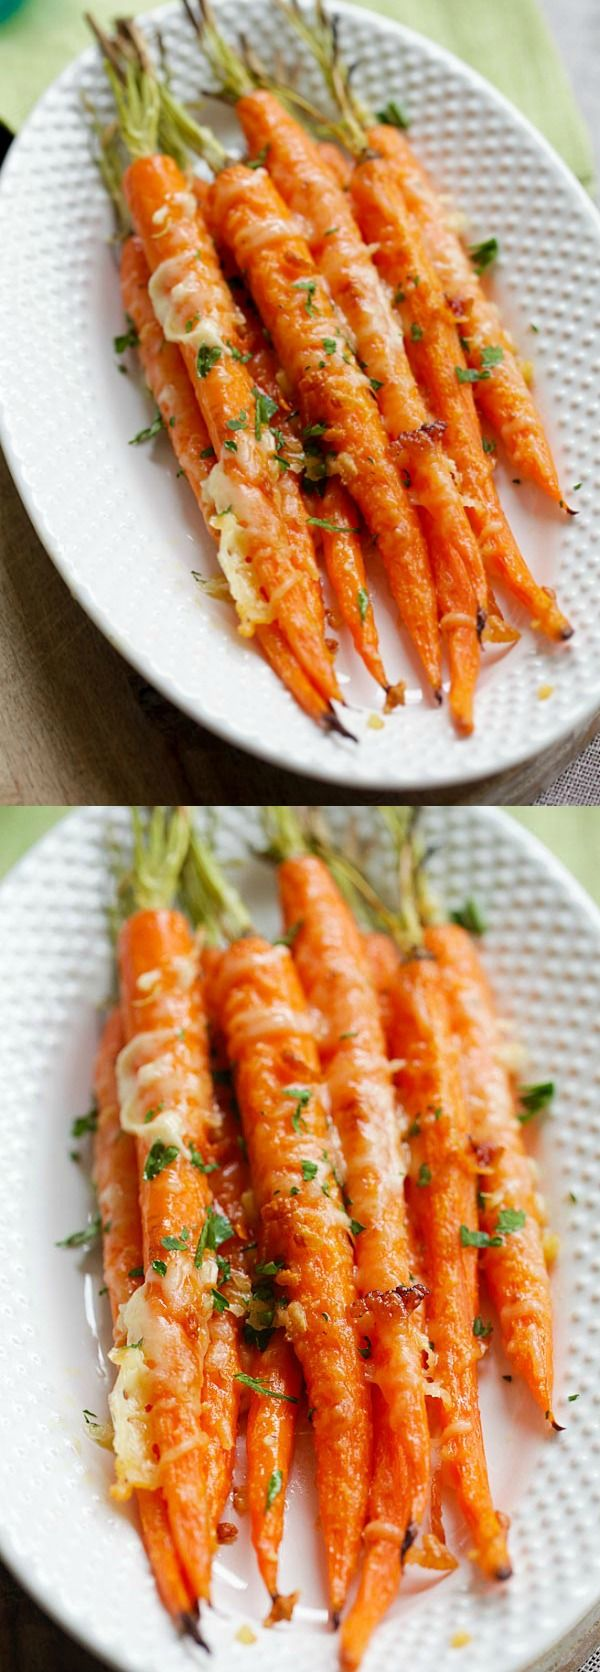 Garlic Parmesan Roasted Carrots - Oven roasted carrots with butter, garlic and…